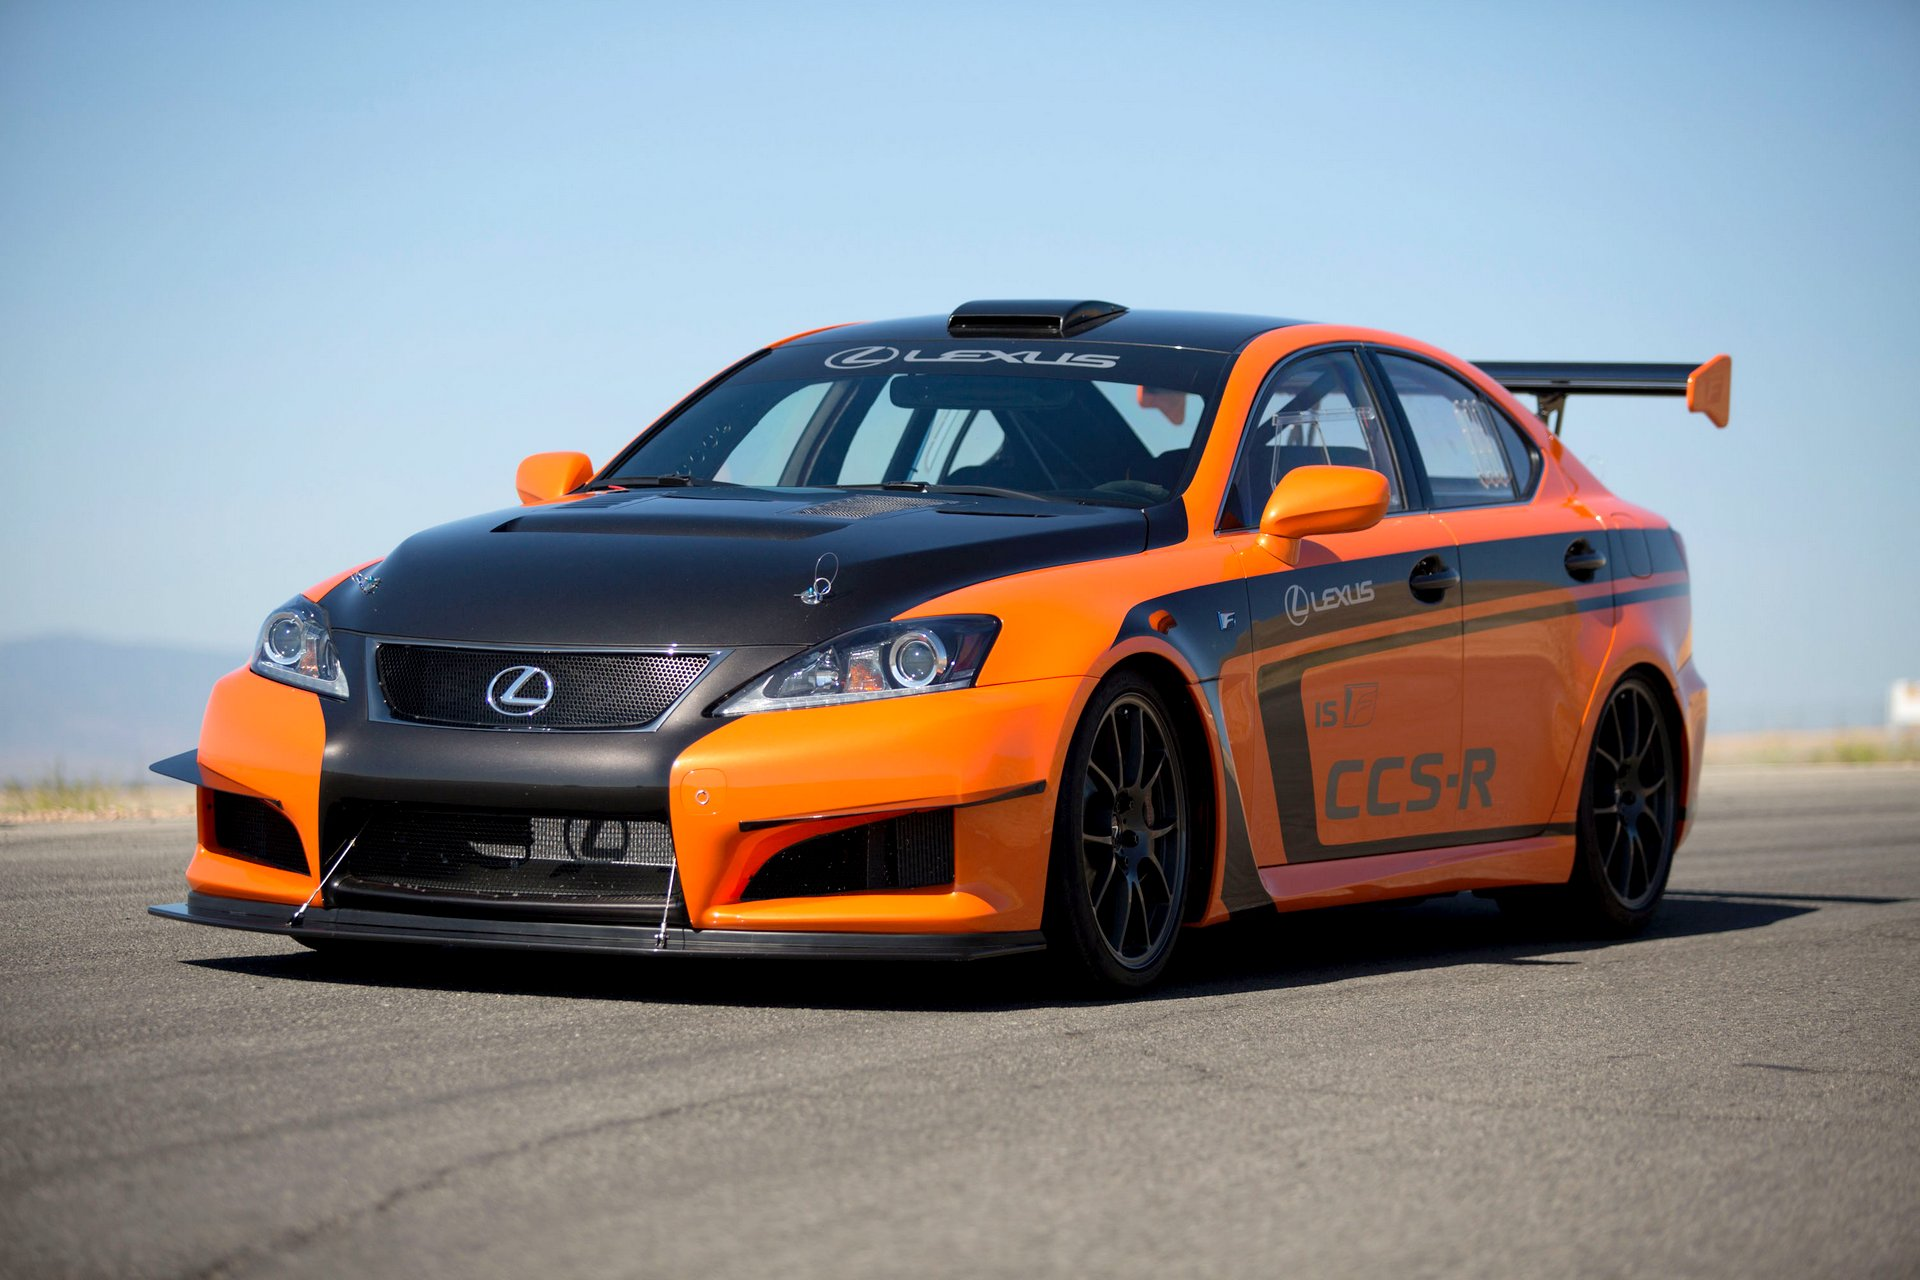 Lexus Is F Ccs R Sports Cars Photo 31467530 Fanpop